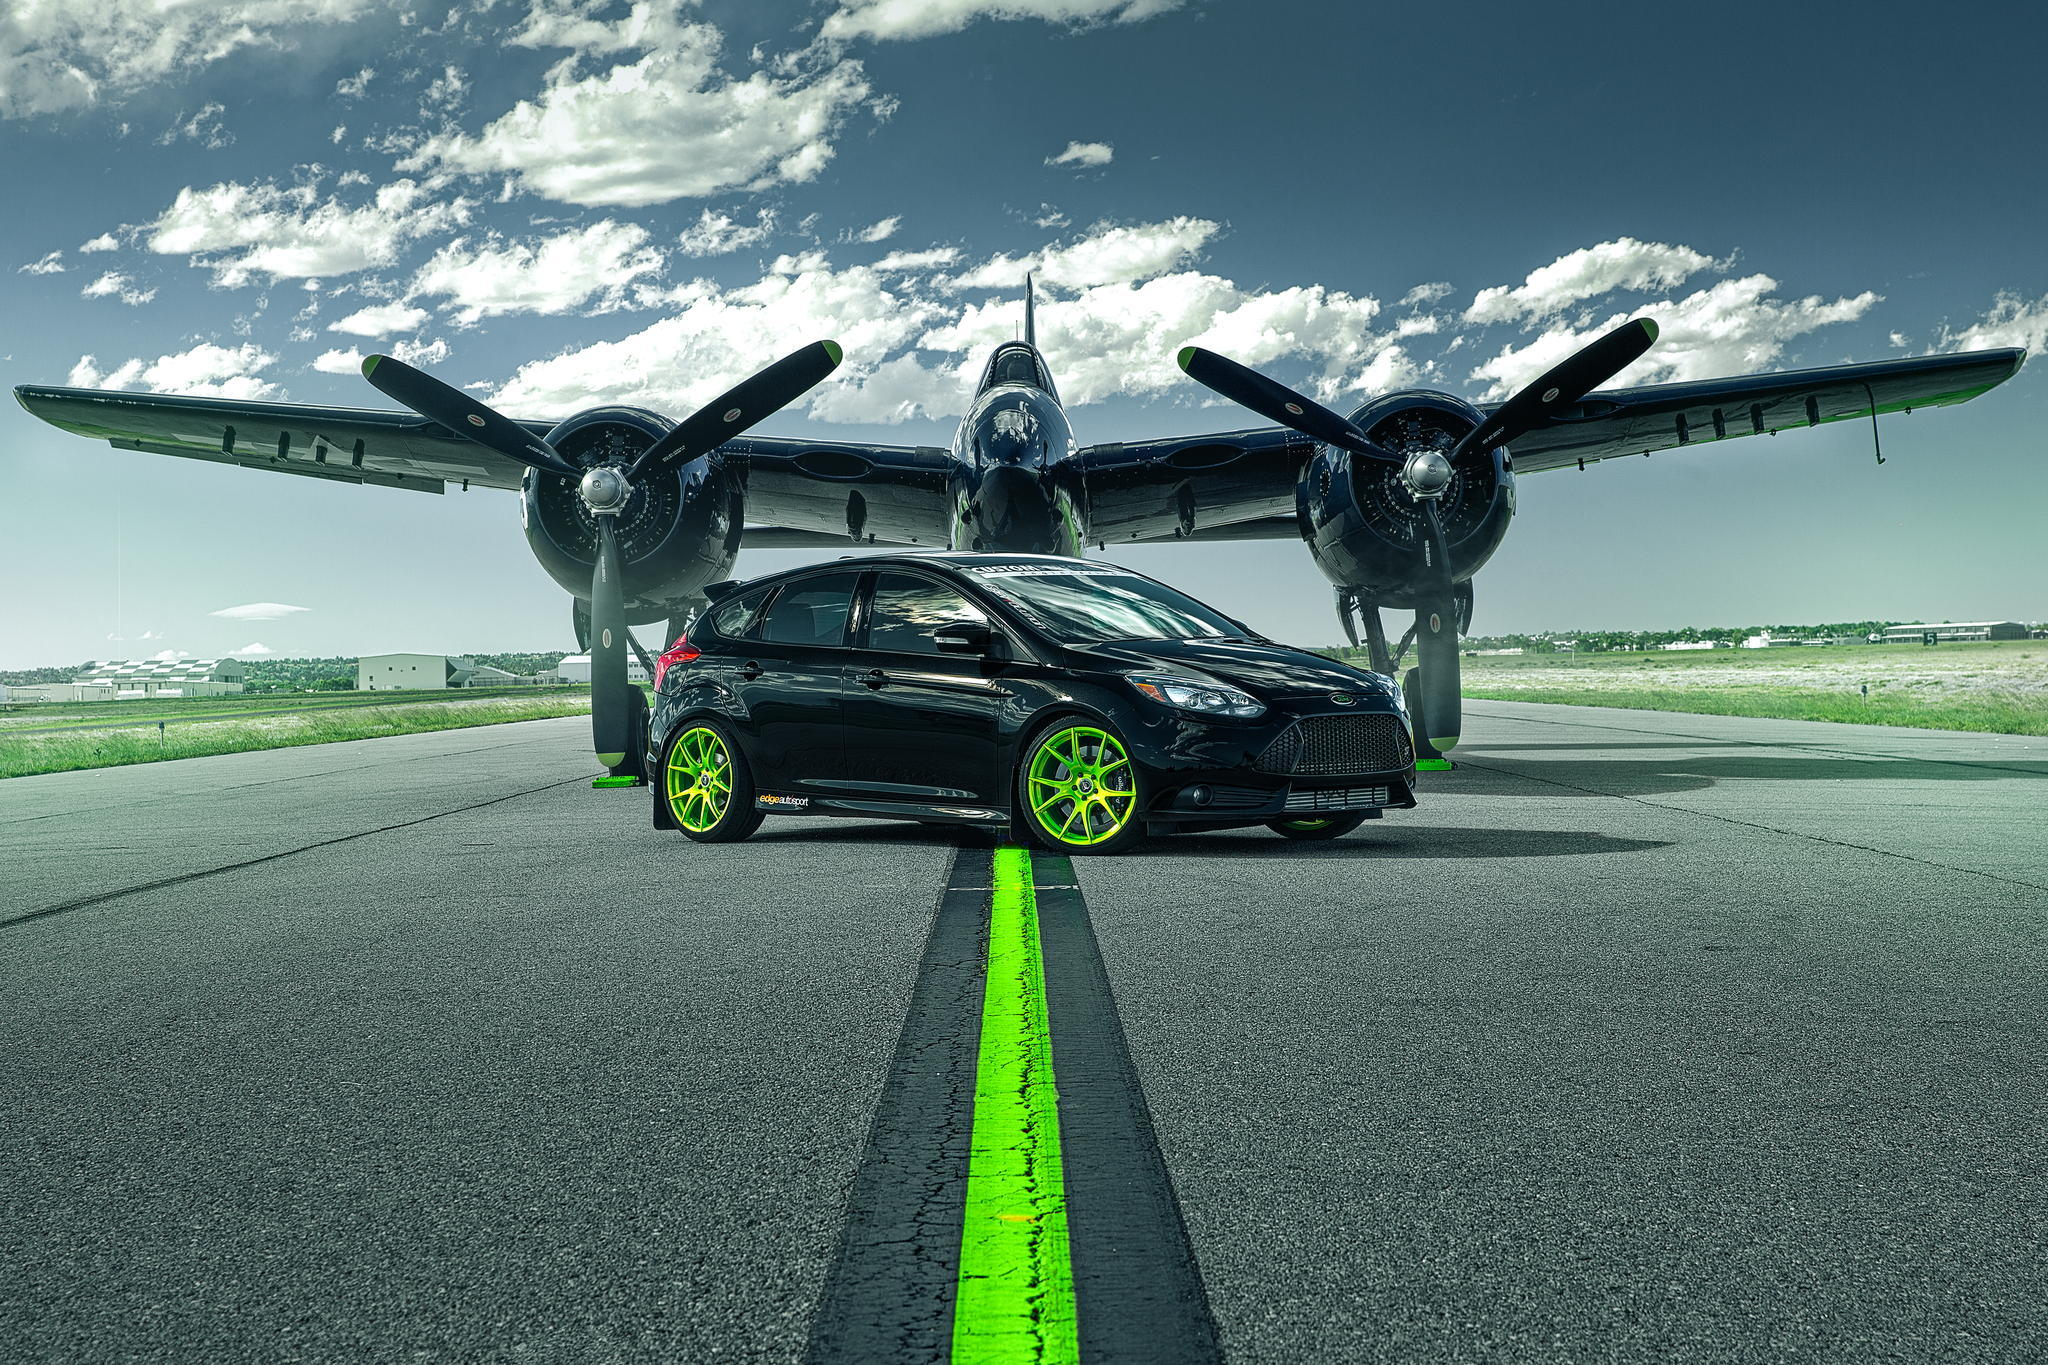 111415 download wallpaper Cars, Ford Focus, St, Ford, Plane, Airplane, Runway screensavers and pictures for free